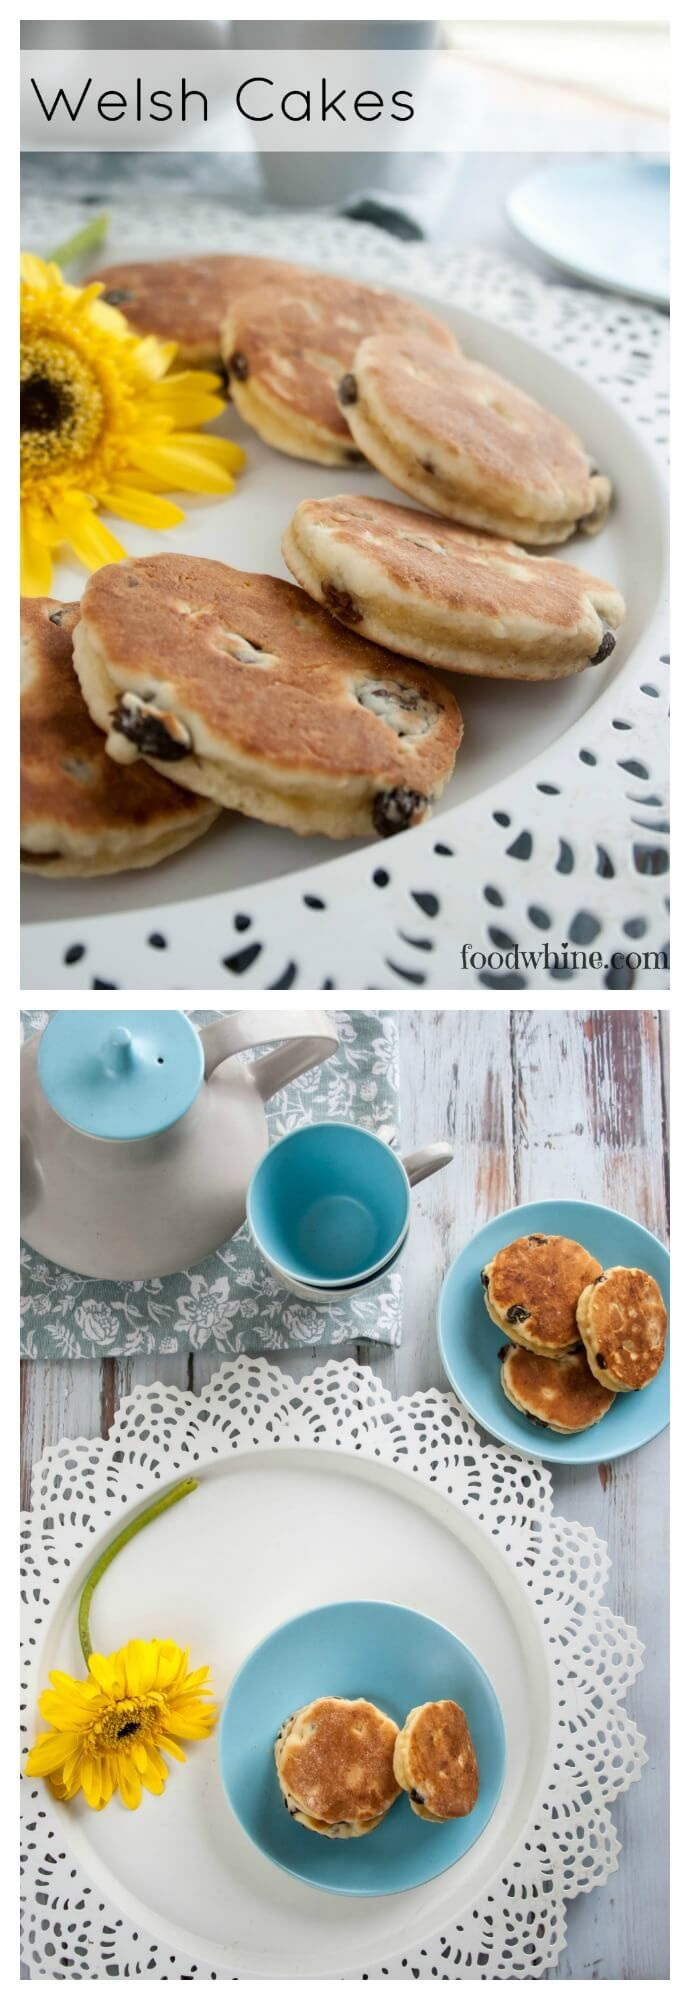 Welsh Cakes - like a cross between a pancake and a tea biscuit. My kids call them pancake cookies! Perfect for packing in lunches or as a snack on-the-go.